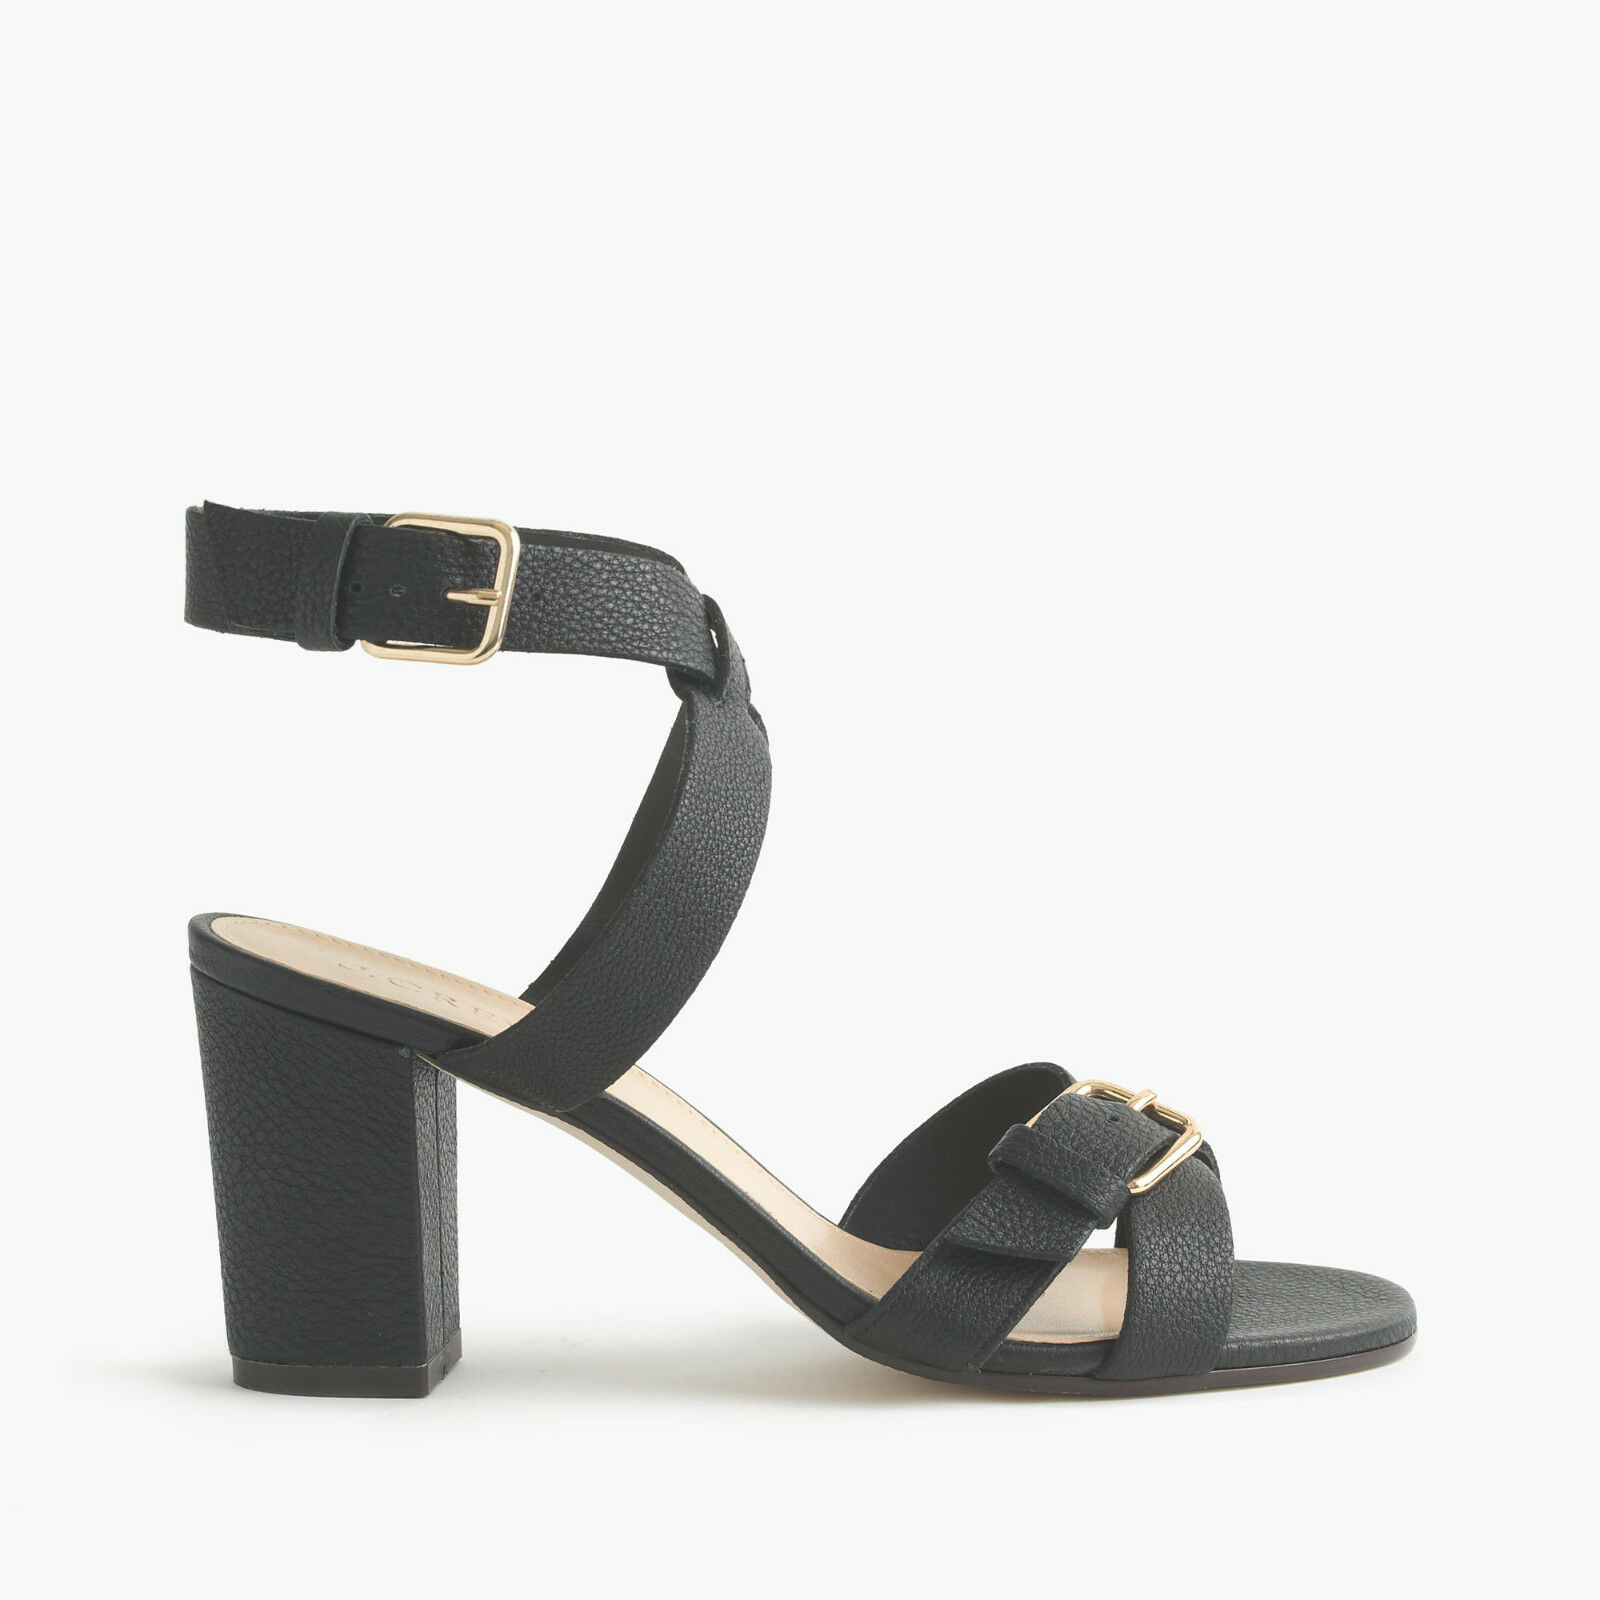 New in Box J Crew Women Buckled mid-heel sandals Black Size 8M